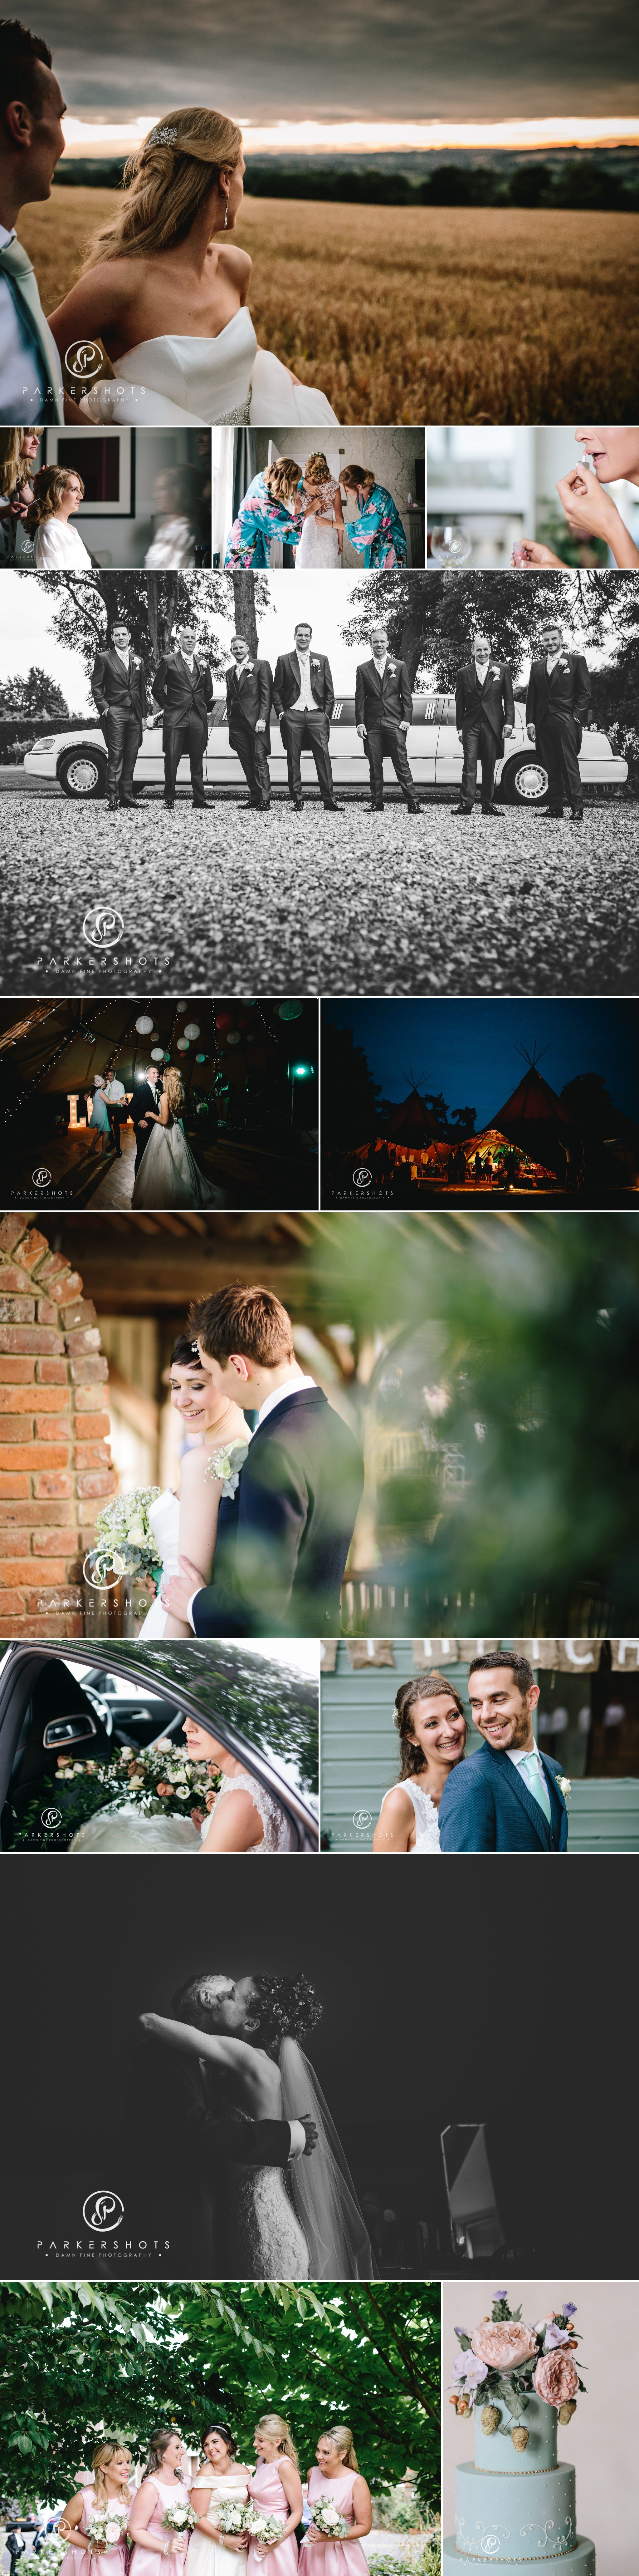 Best wedding photographer at Winters Barns